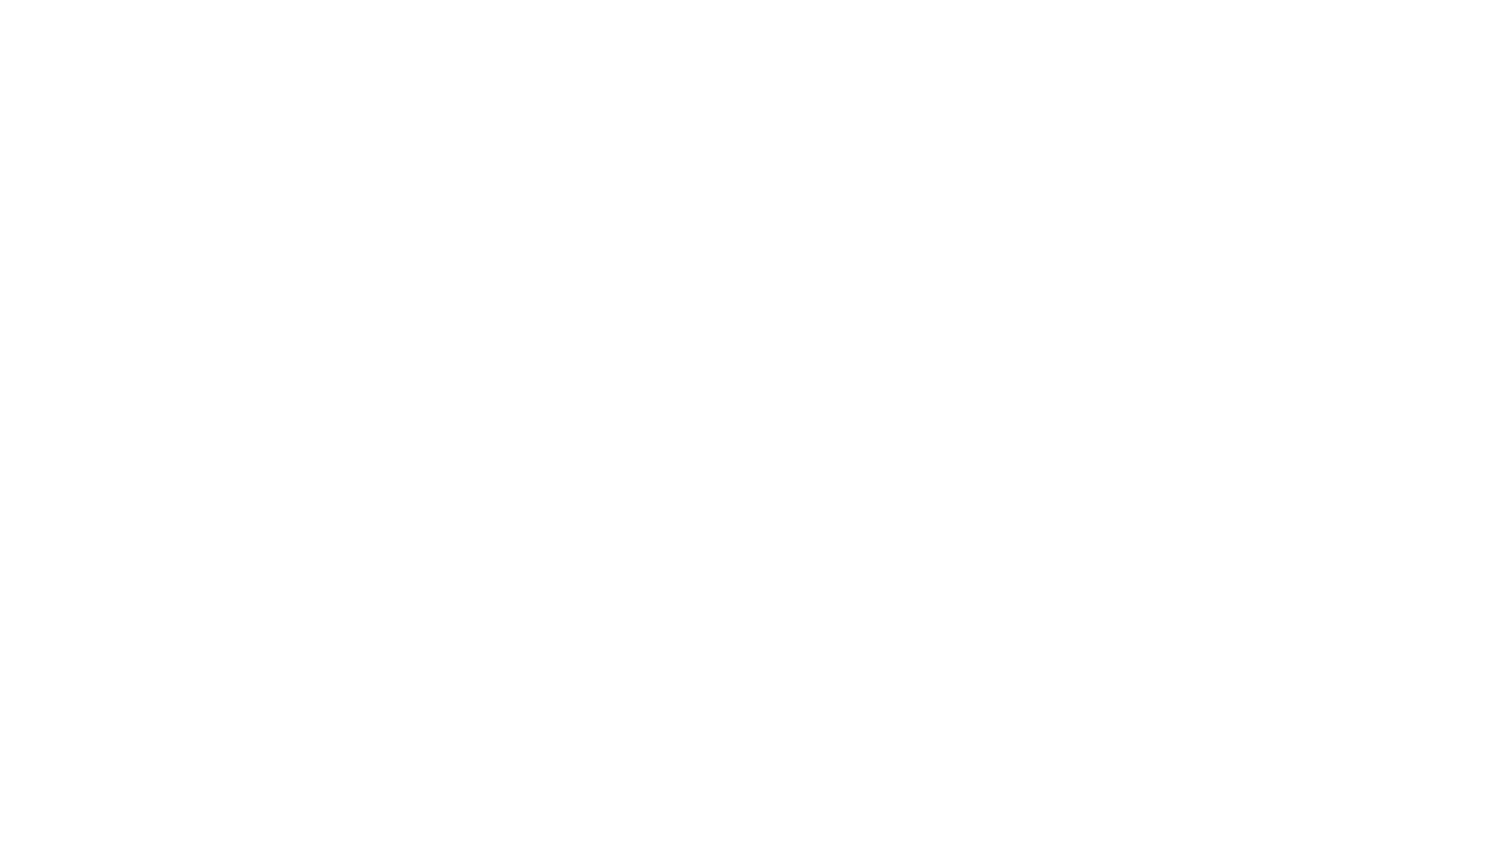 Heaner Design Group